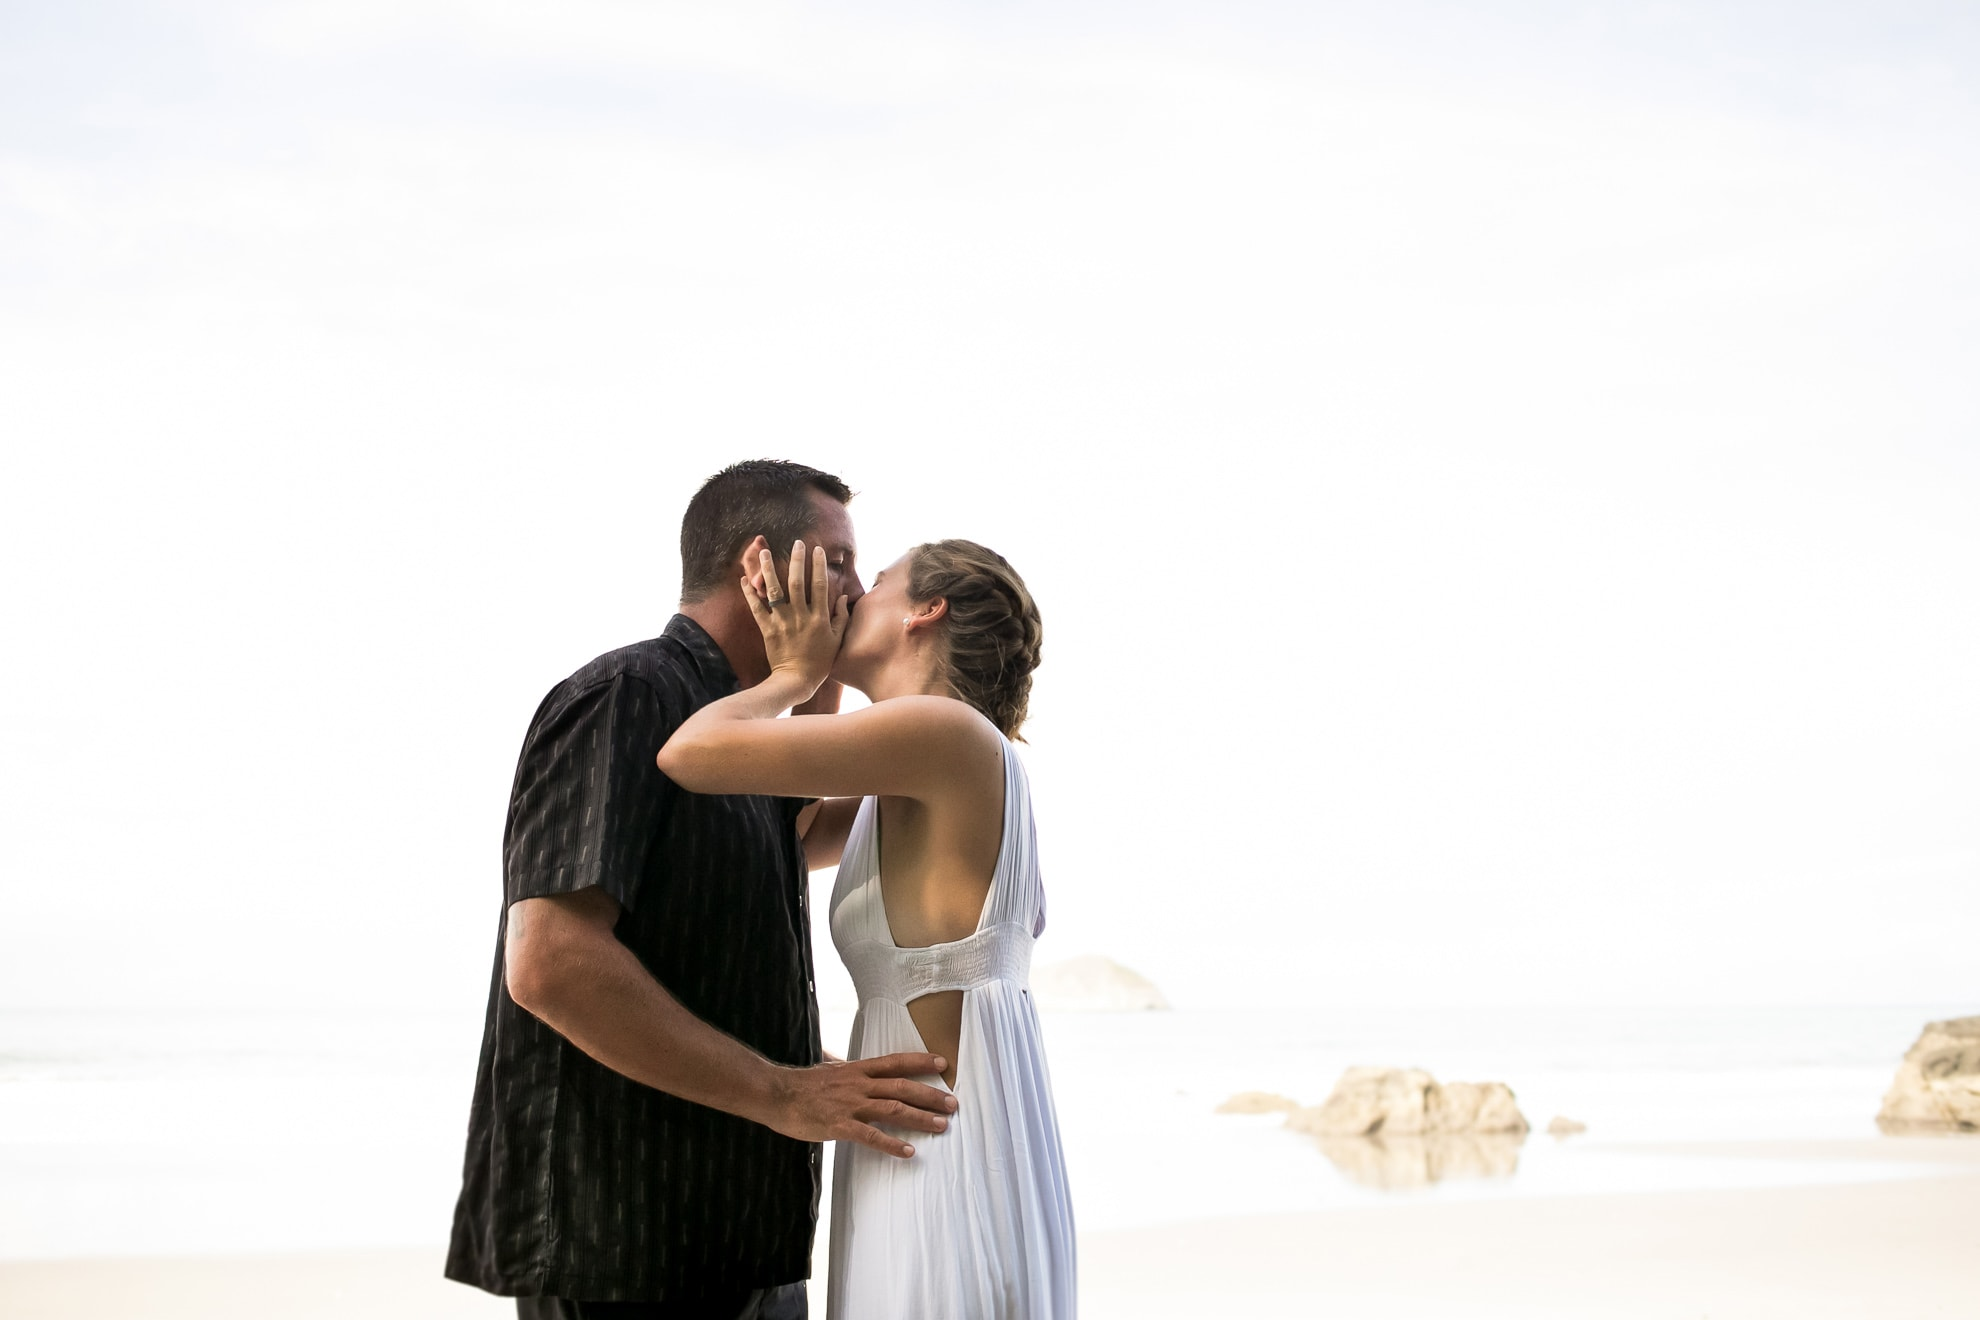 Kiss on beach in Costa Rica.